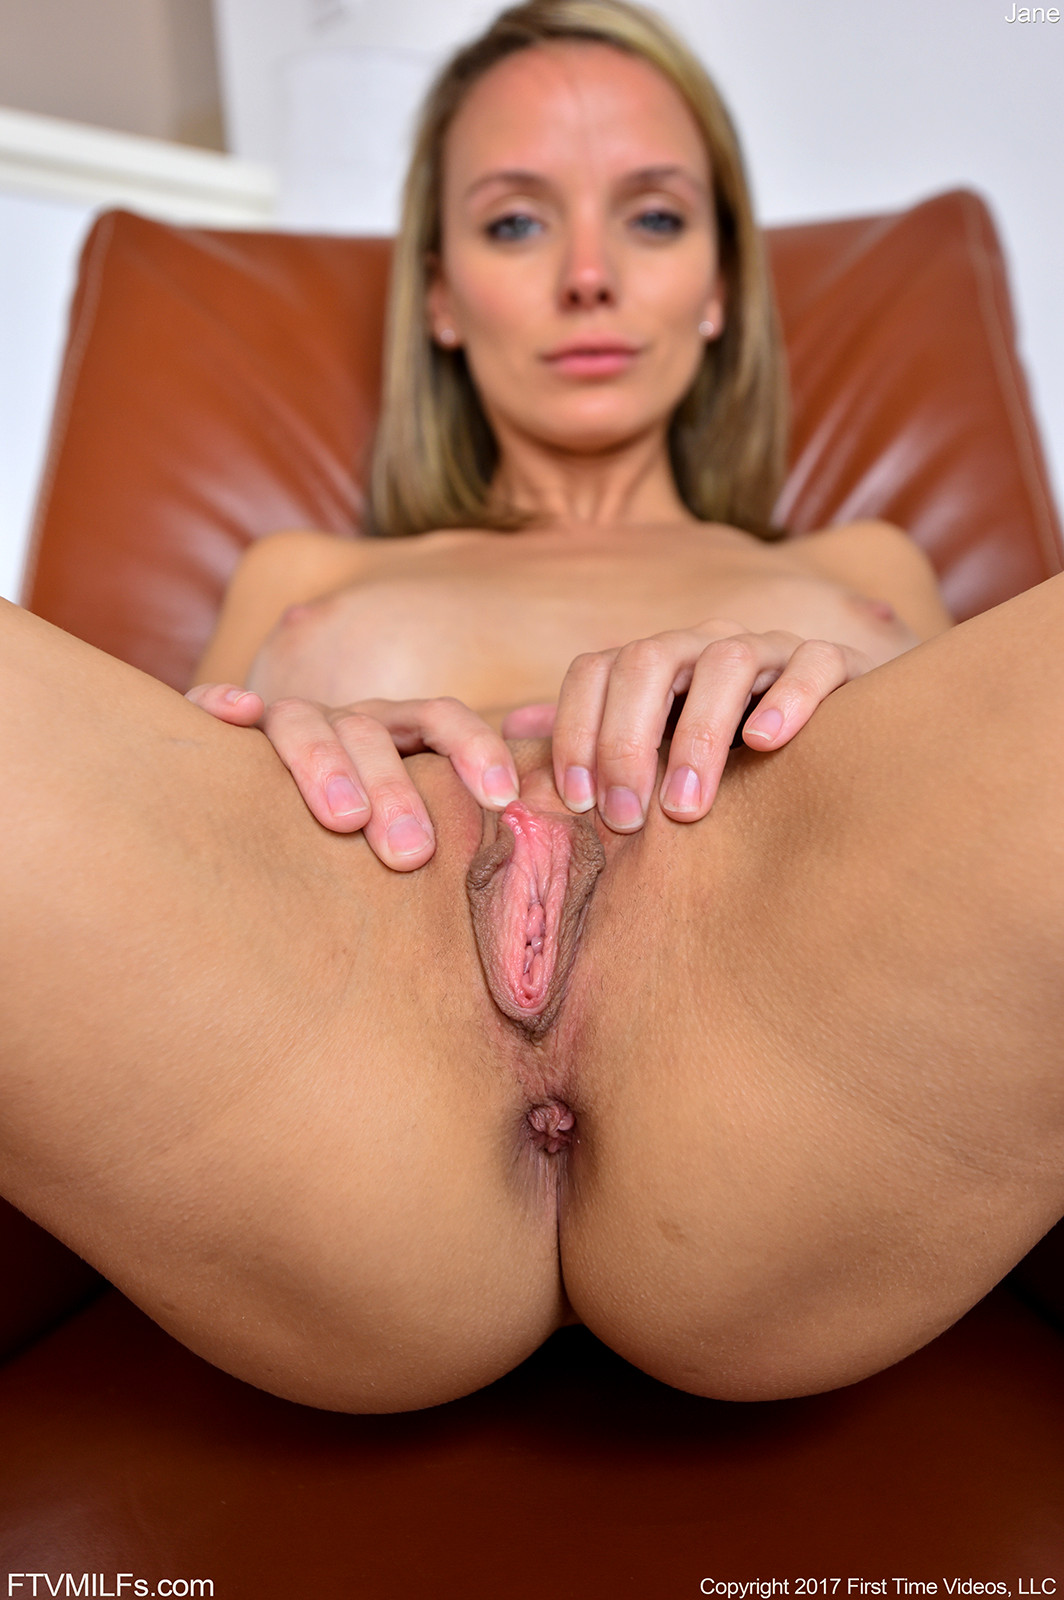 Naked milf pis really. was